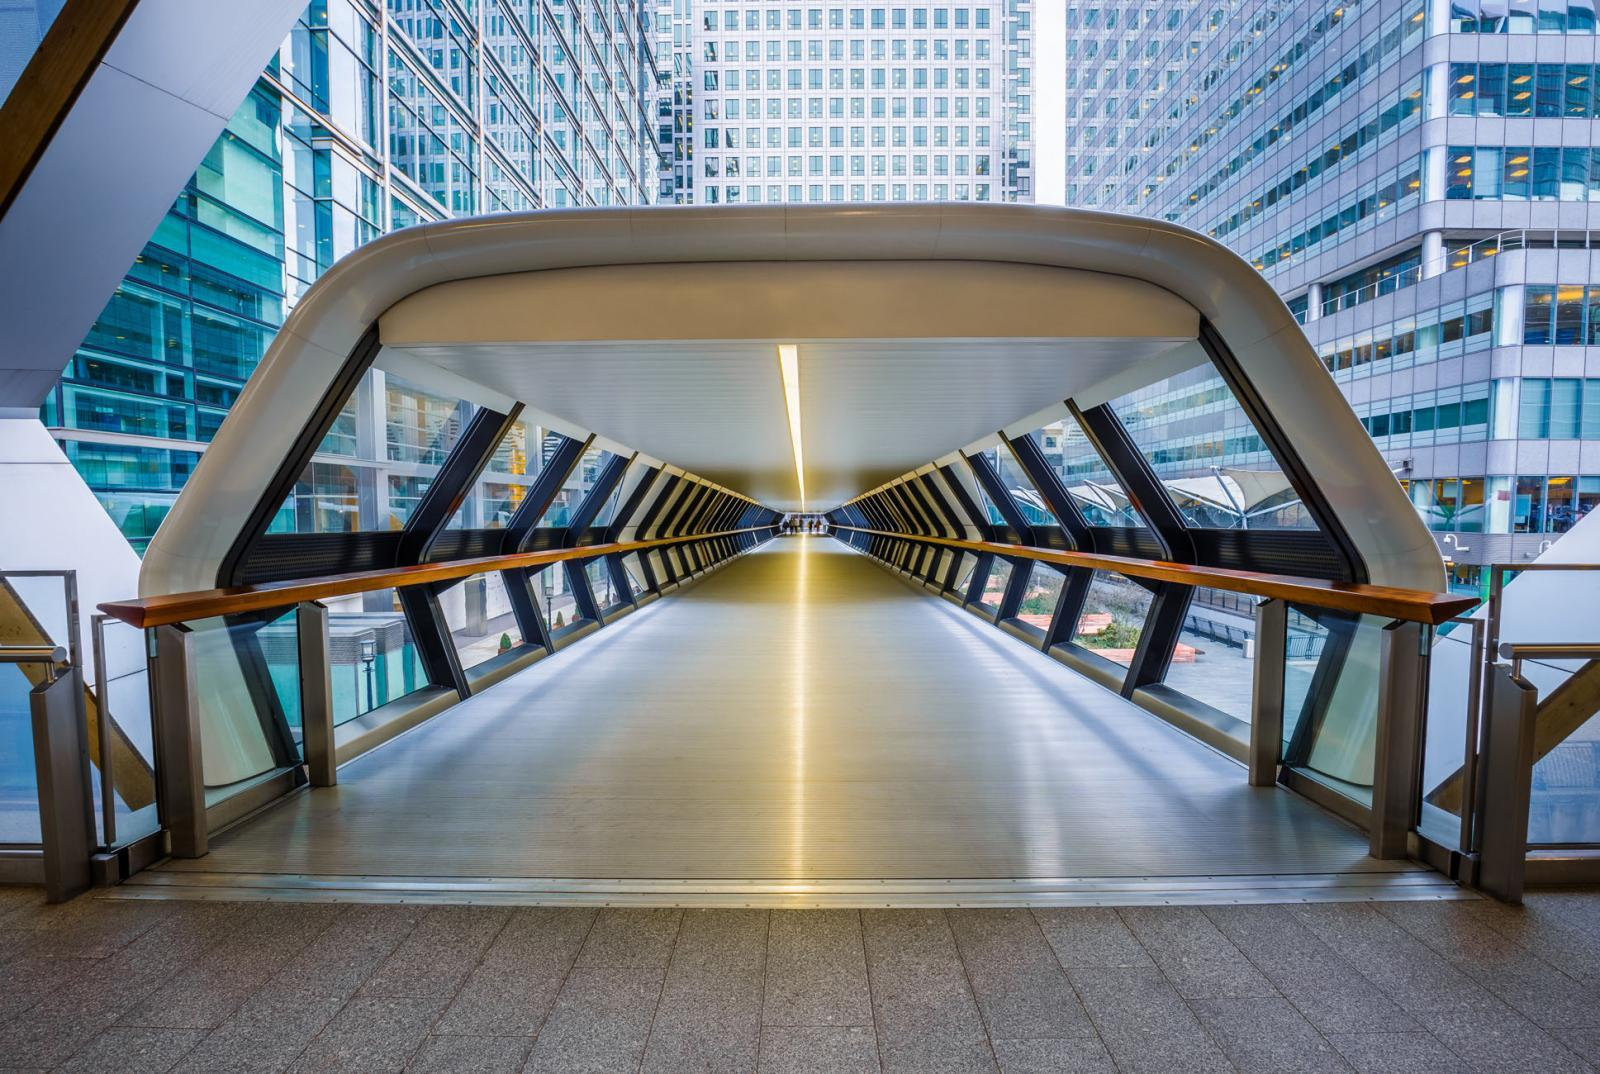 Canary Wharf Station – Elizabeth Line London